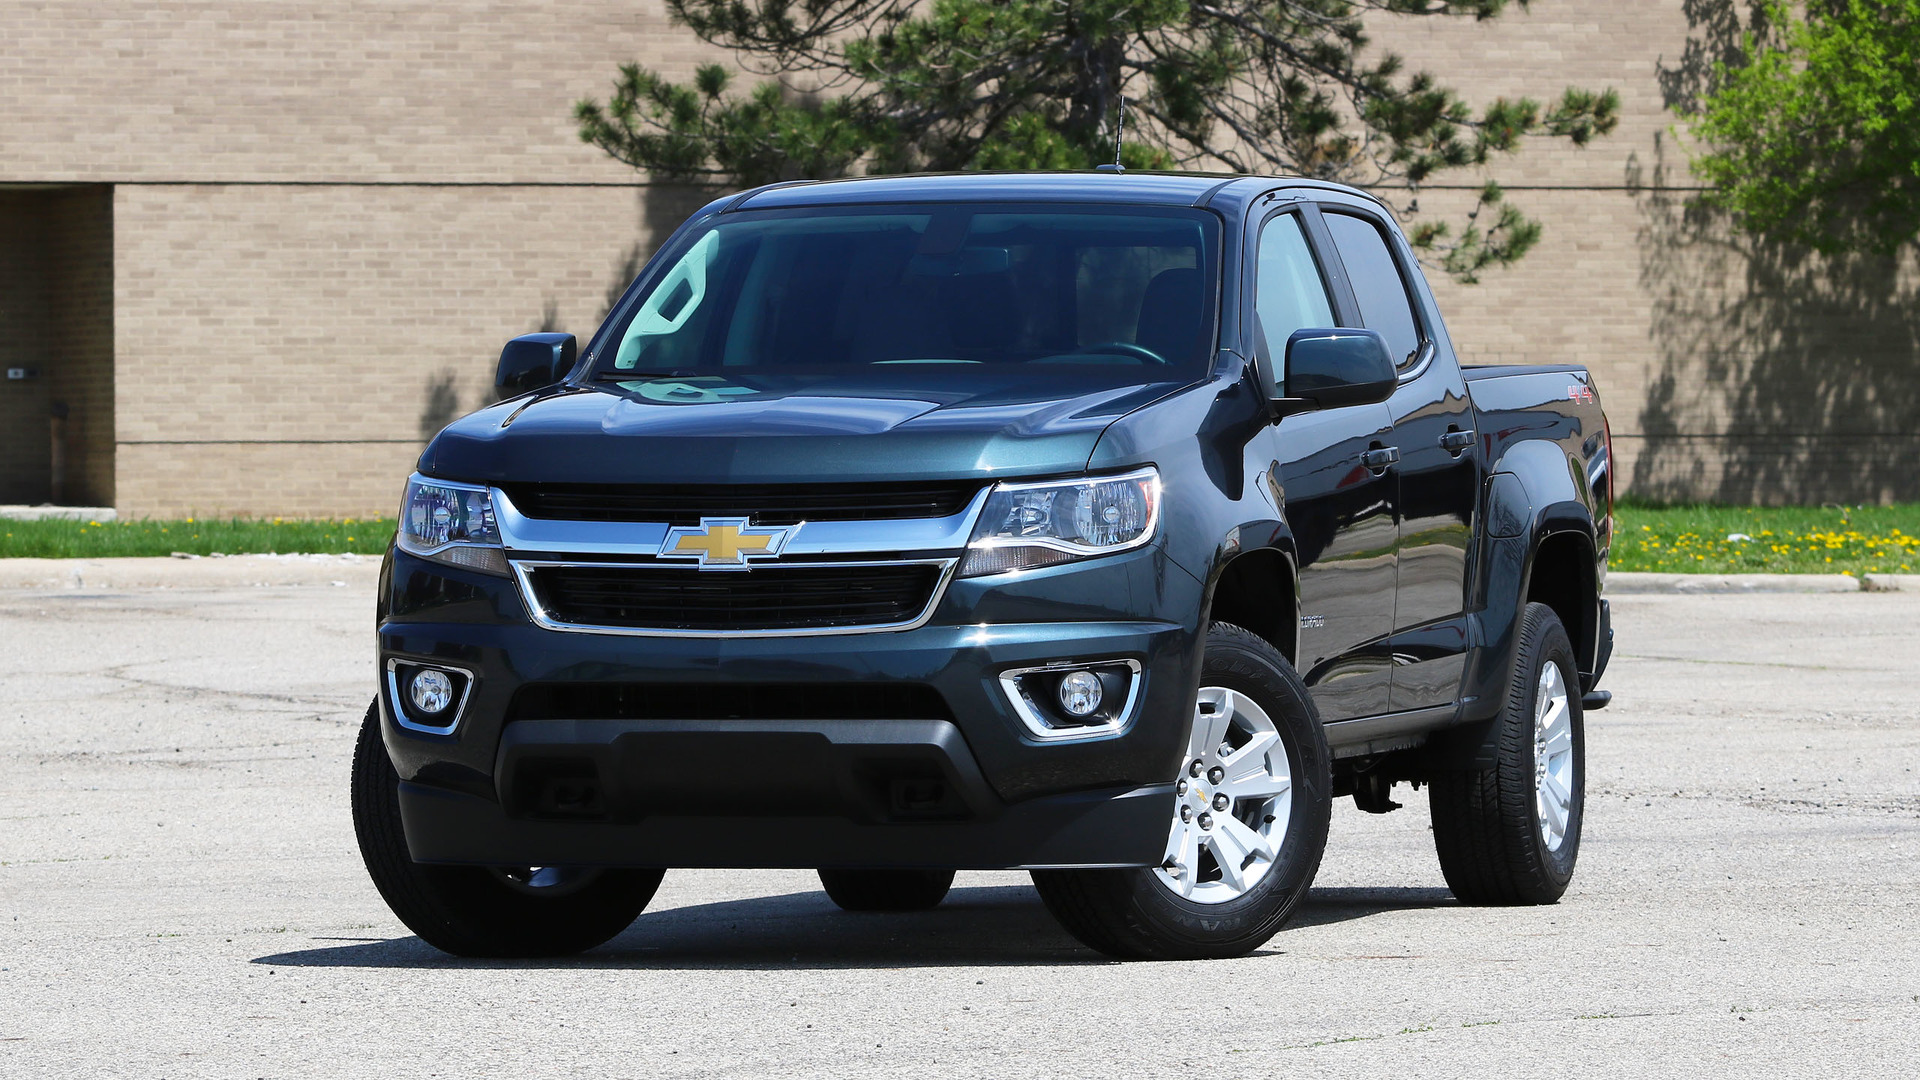 2017 Chevy Colorado Review: All You Need From A Truck